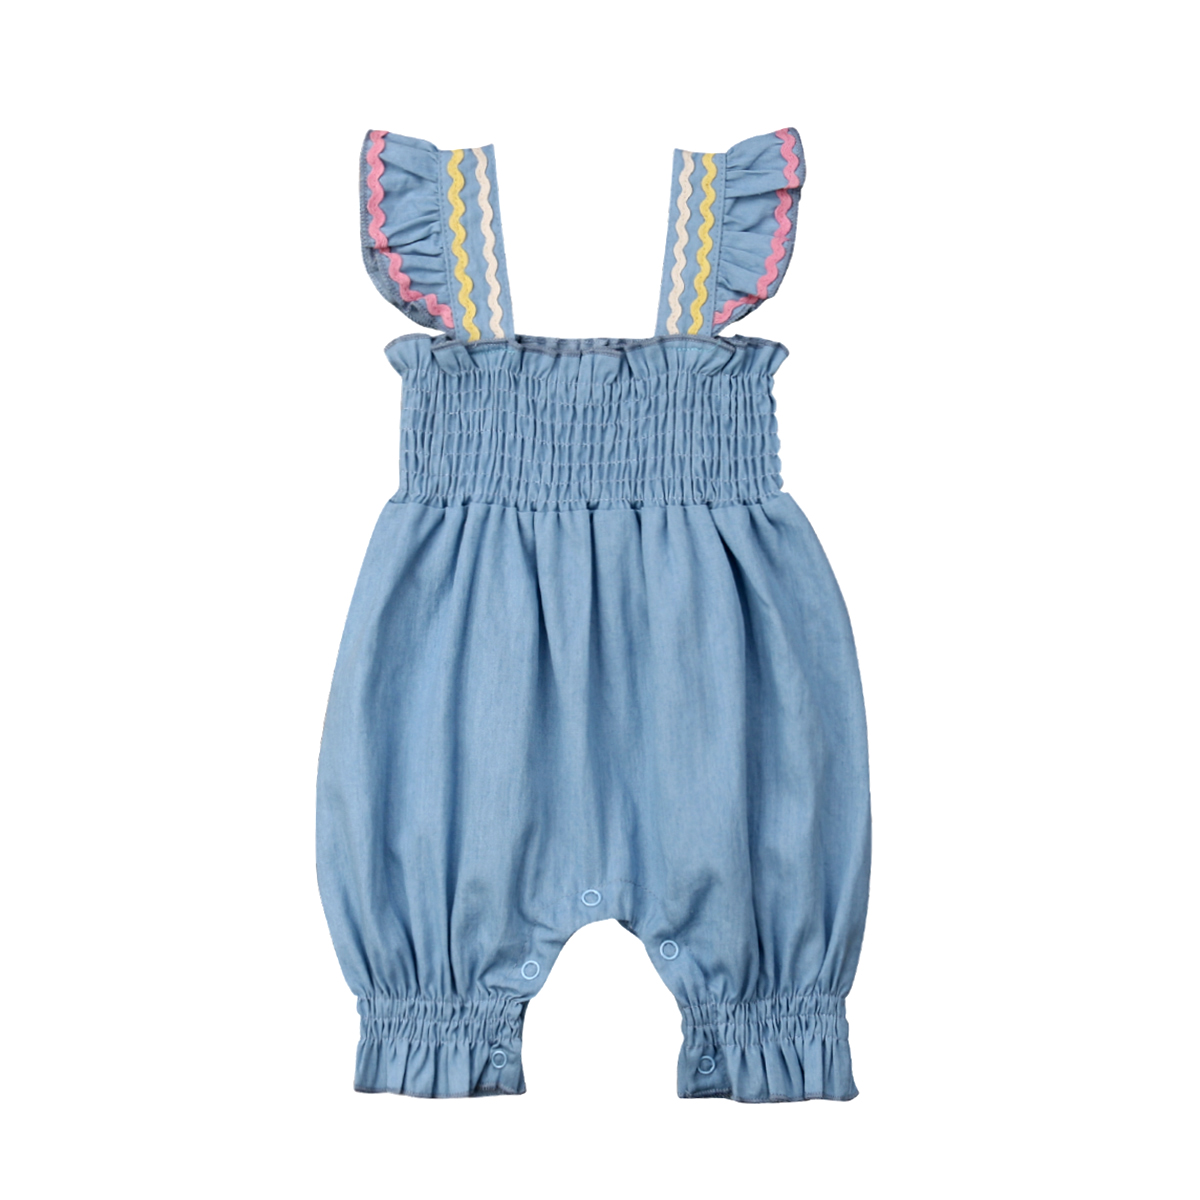 7e33b8e01475 Summer 2019 Infant Newborn Baby Girls Clothing Ruffles Baby Girls Romper  Jumpsuit Striped Bloomers Baby Girls Costumes-in Rompers from Mother   Kids  on ...